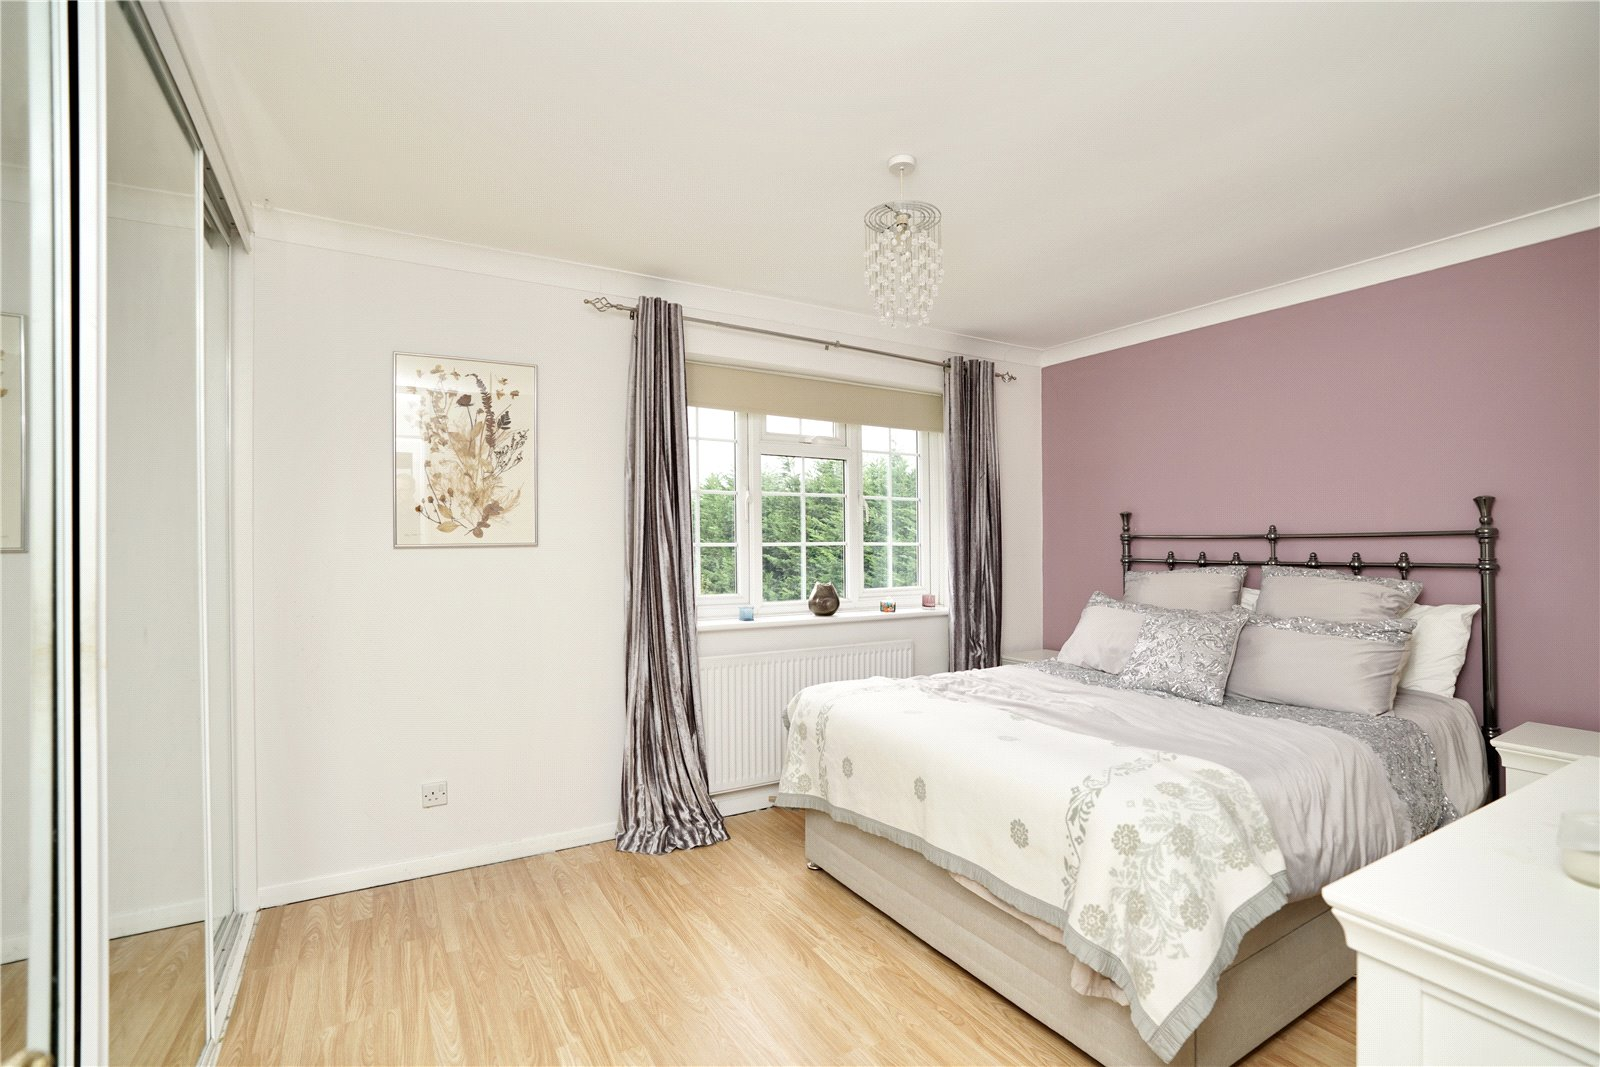 4 bed house for sale in Mint Lane, Great Paxton  - Property Image 11